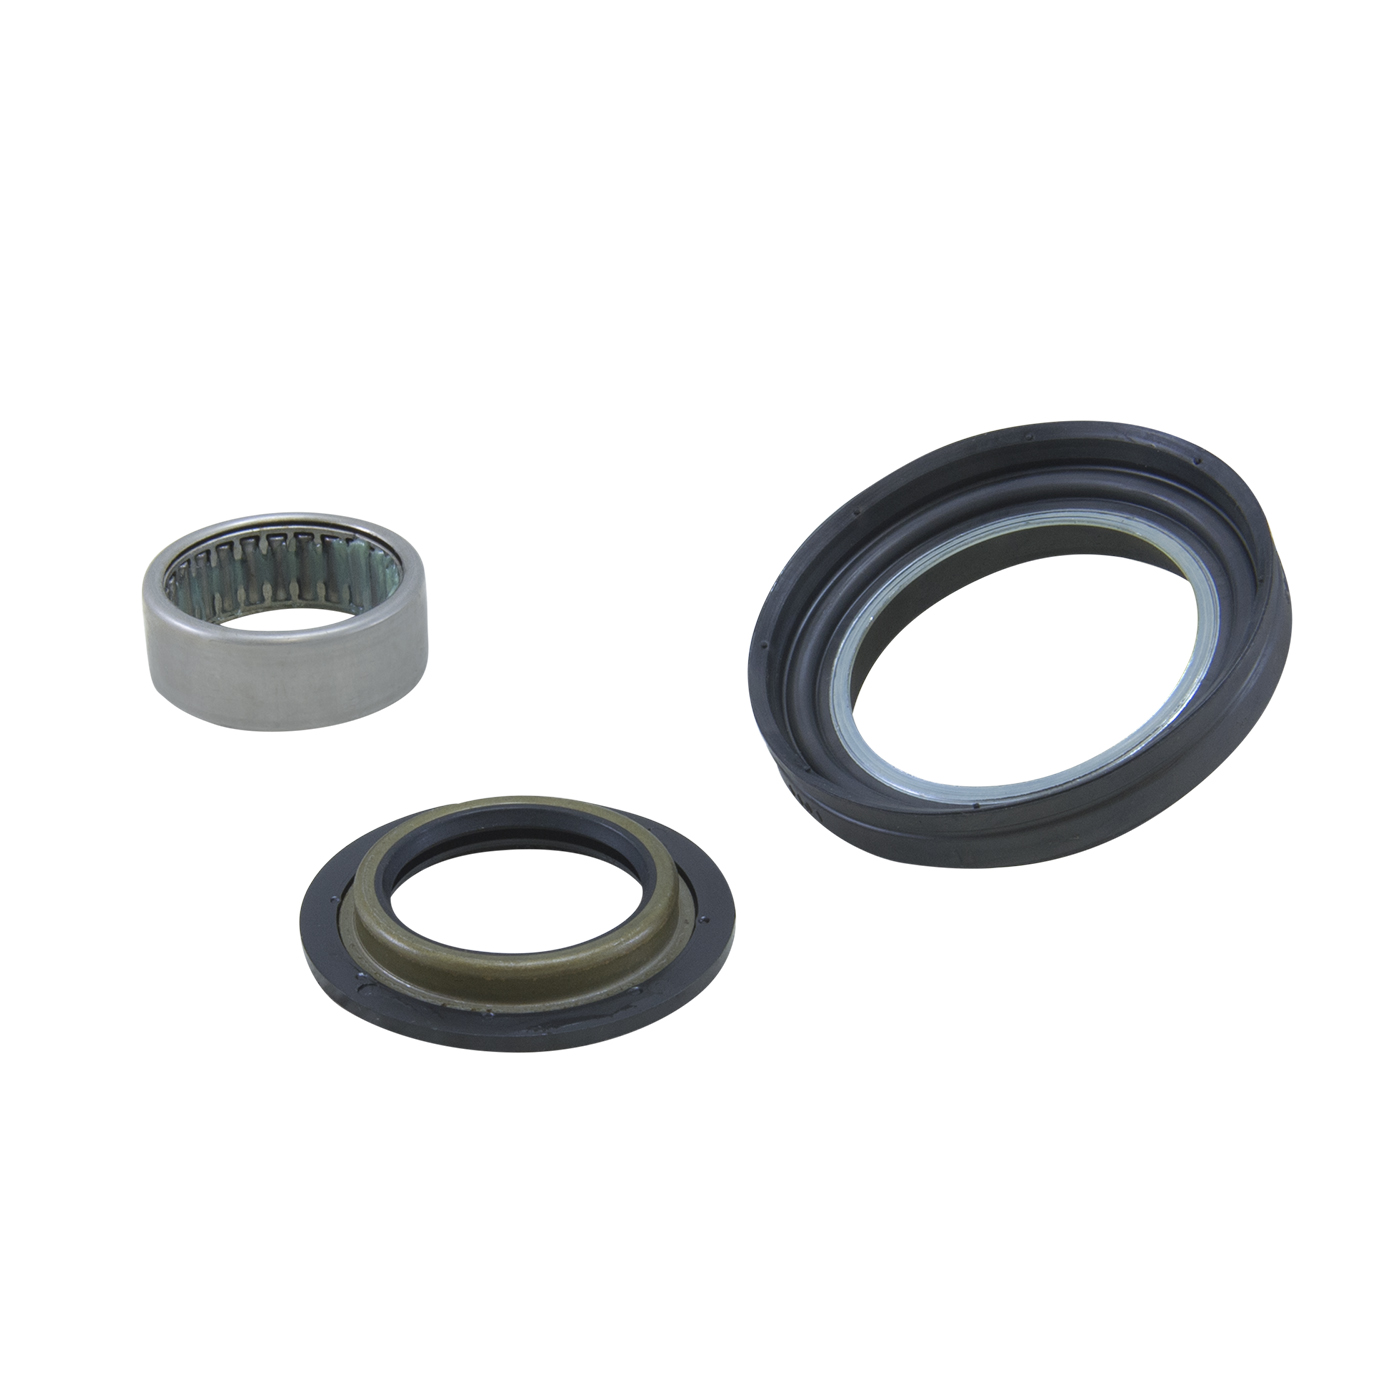 YSPSP-029 - Spindle bearing & seal kit for '93-'96 Ford Dana28, Model 35 IFS & Dana 44 IFS